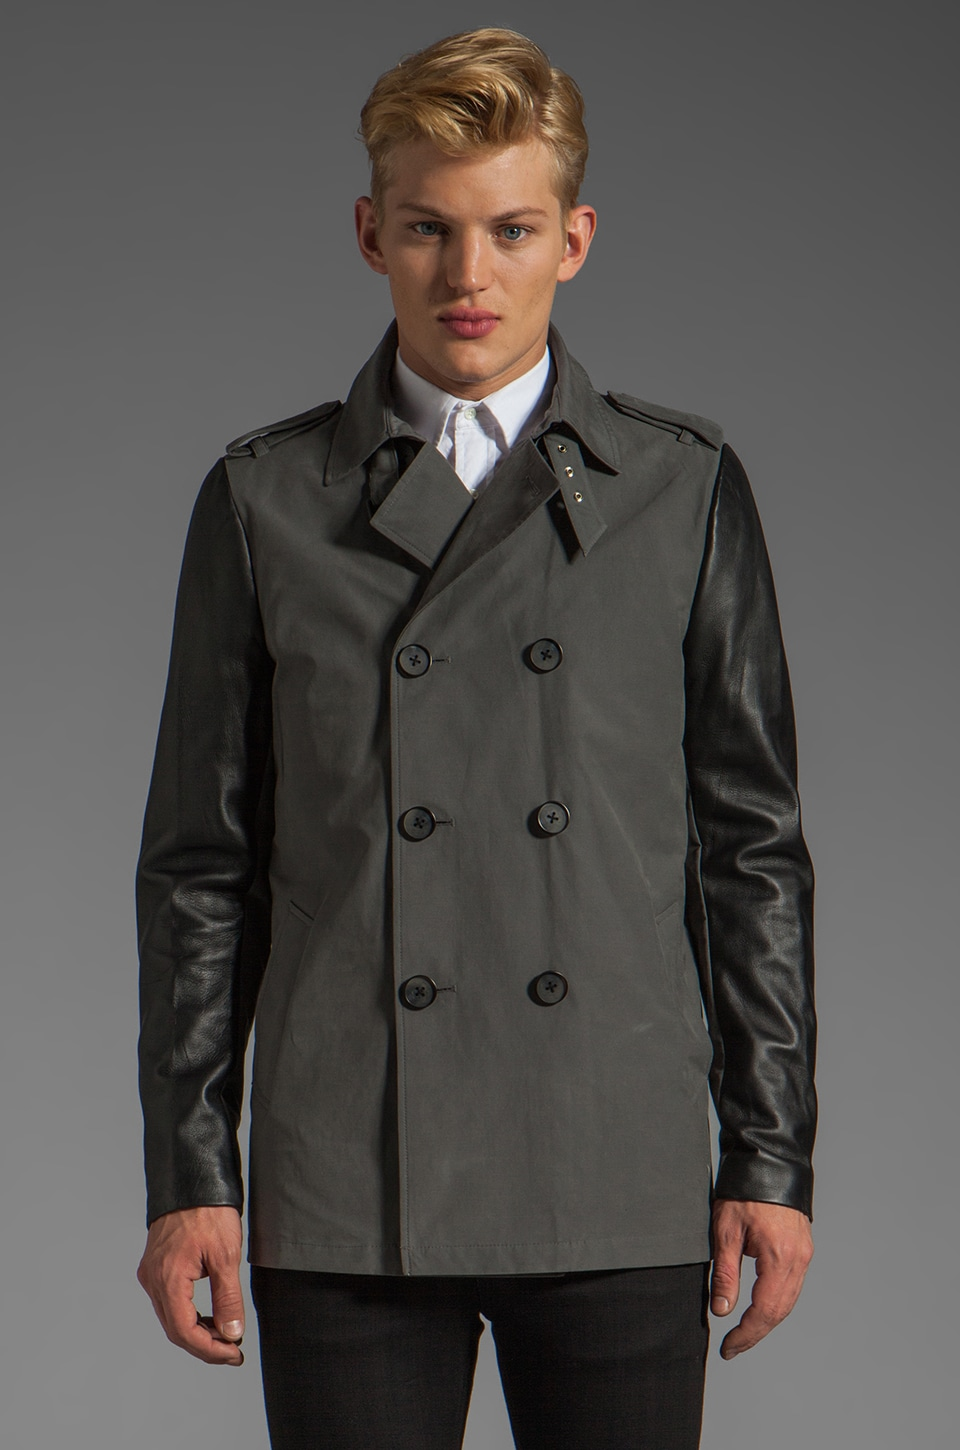 Mackage Spencer Peacoat in Gunmetal